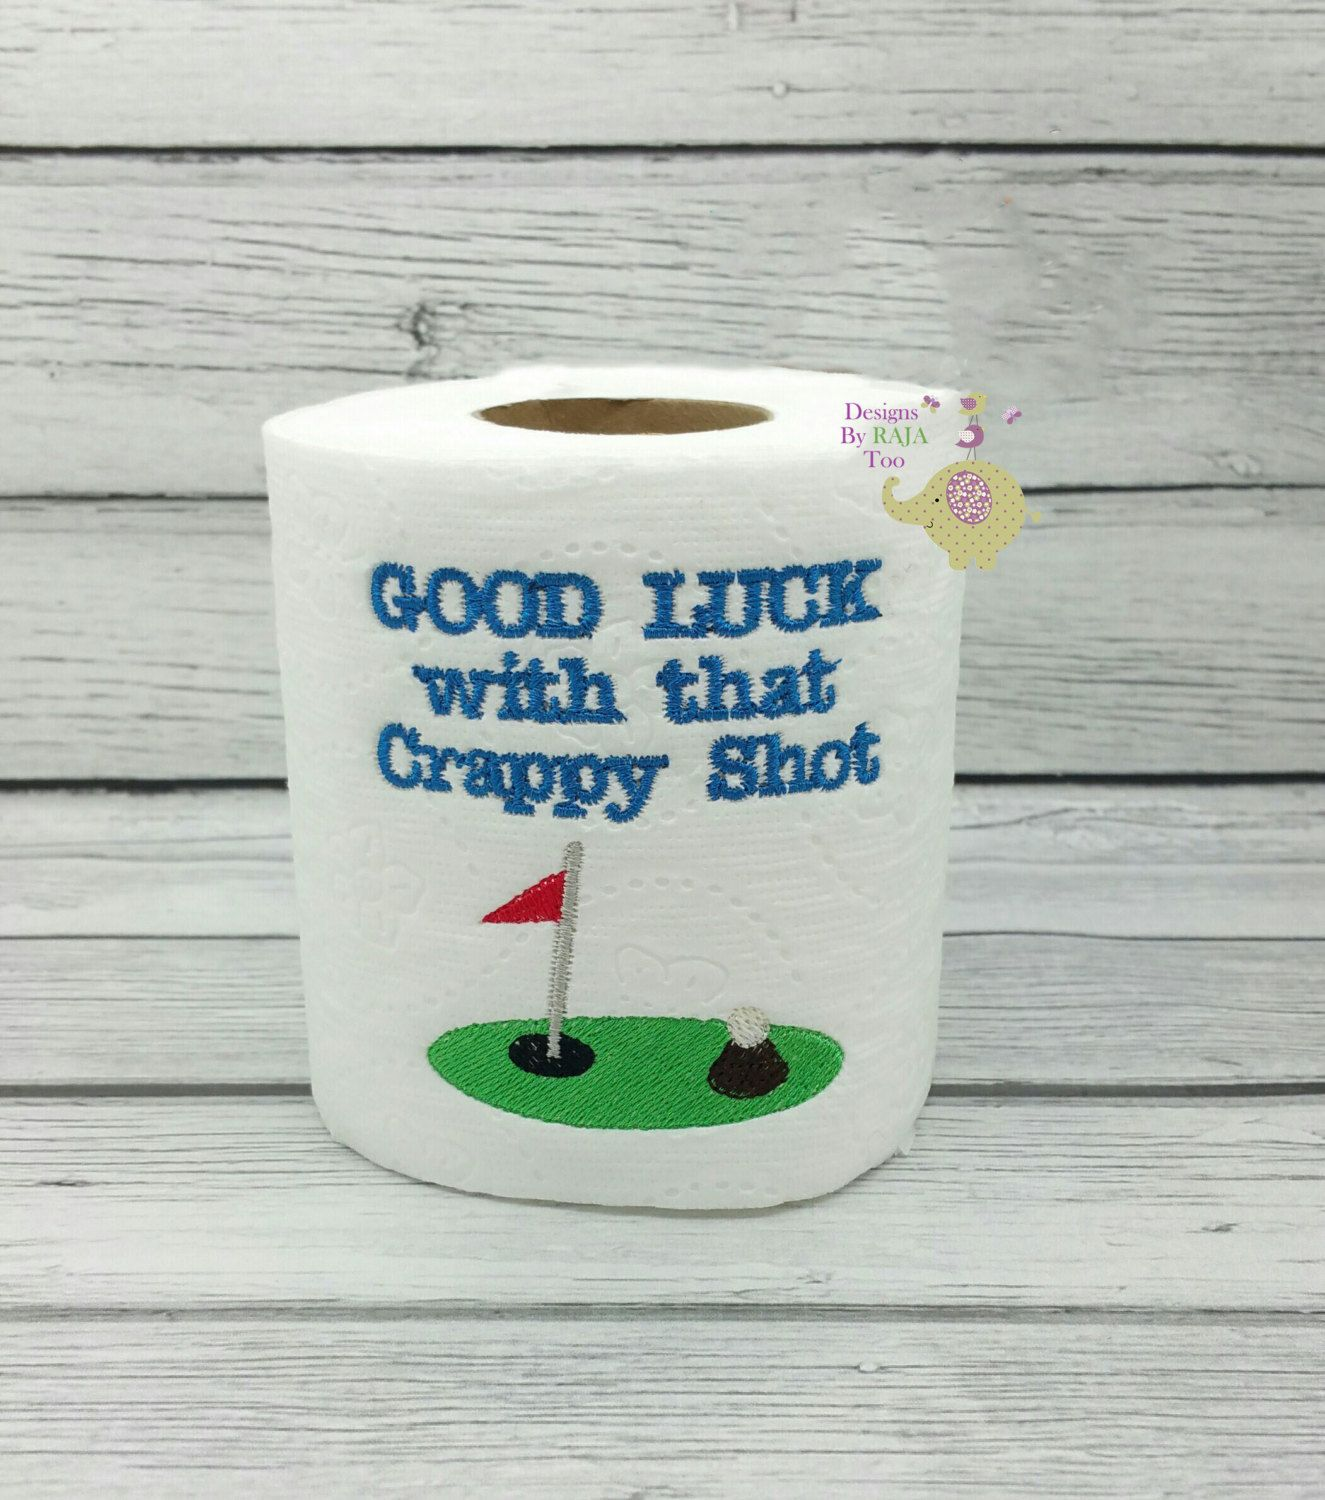 Embroidery designs for toilet paper - Good Luck With That Crappy Shot Golf Embroidered Toilet Paper Fathers Day Gag Gift